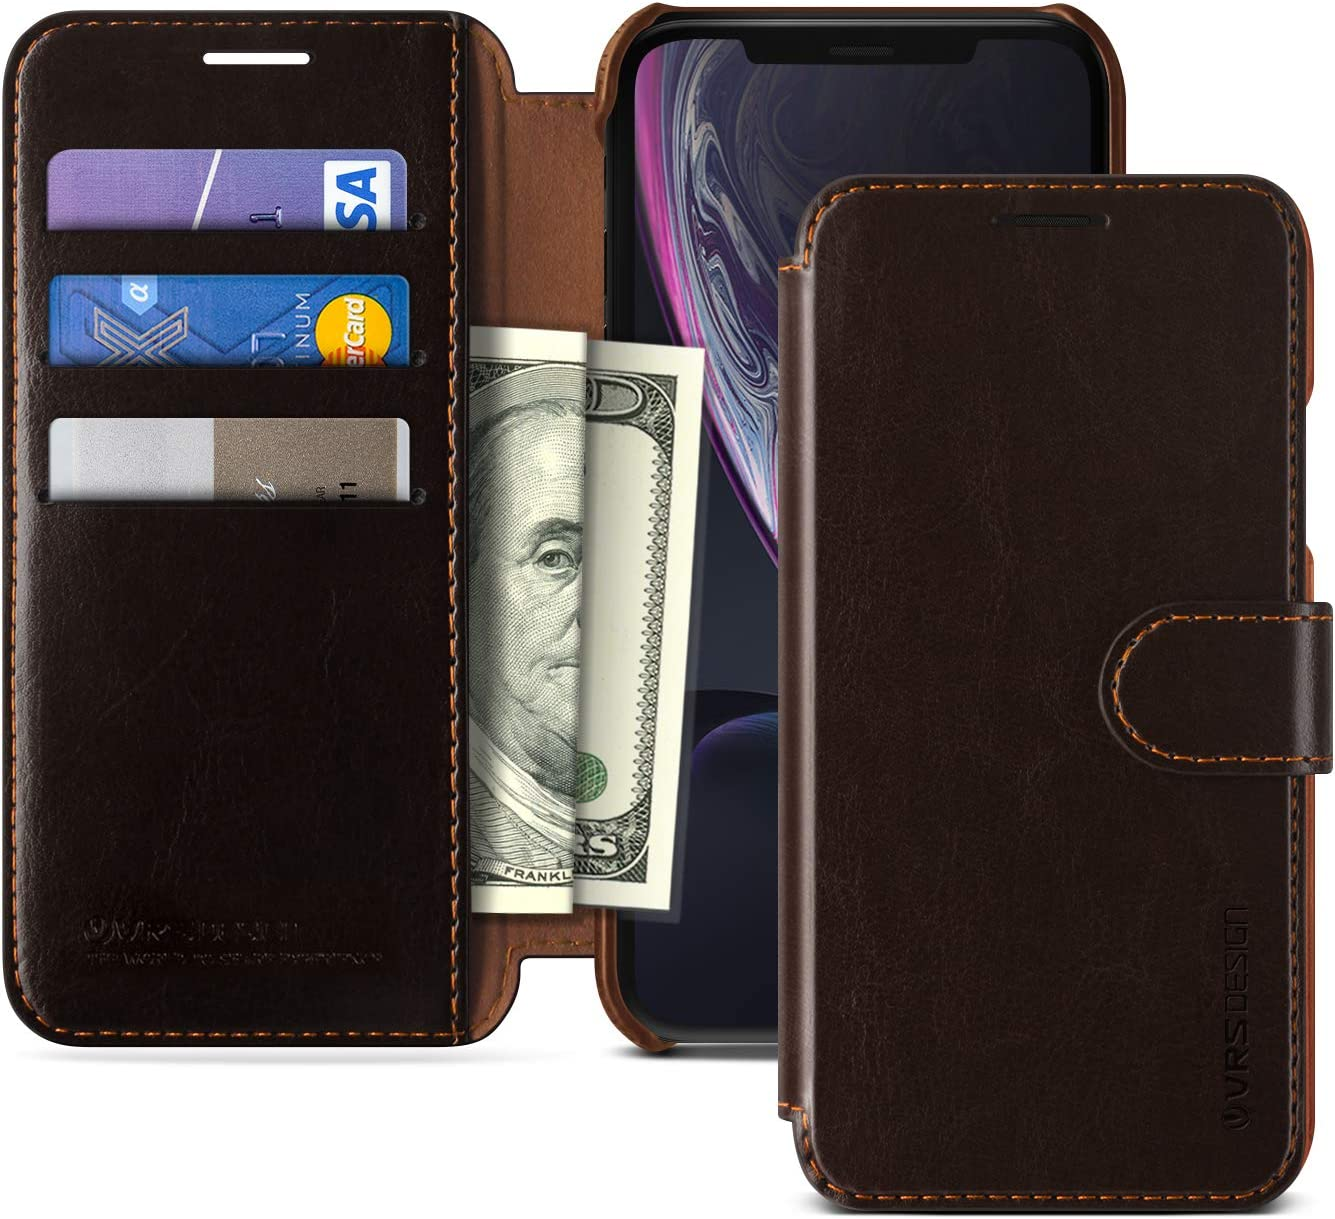 iPhone XR Case, VRS Design [Brown] Drop Protection Cover Classy Slim Premium PU Leather Wallet [Layered Dandy] ID Credit Card Slot Holder Compatible with Apple iPhone XR 6.1 inch (2018)